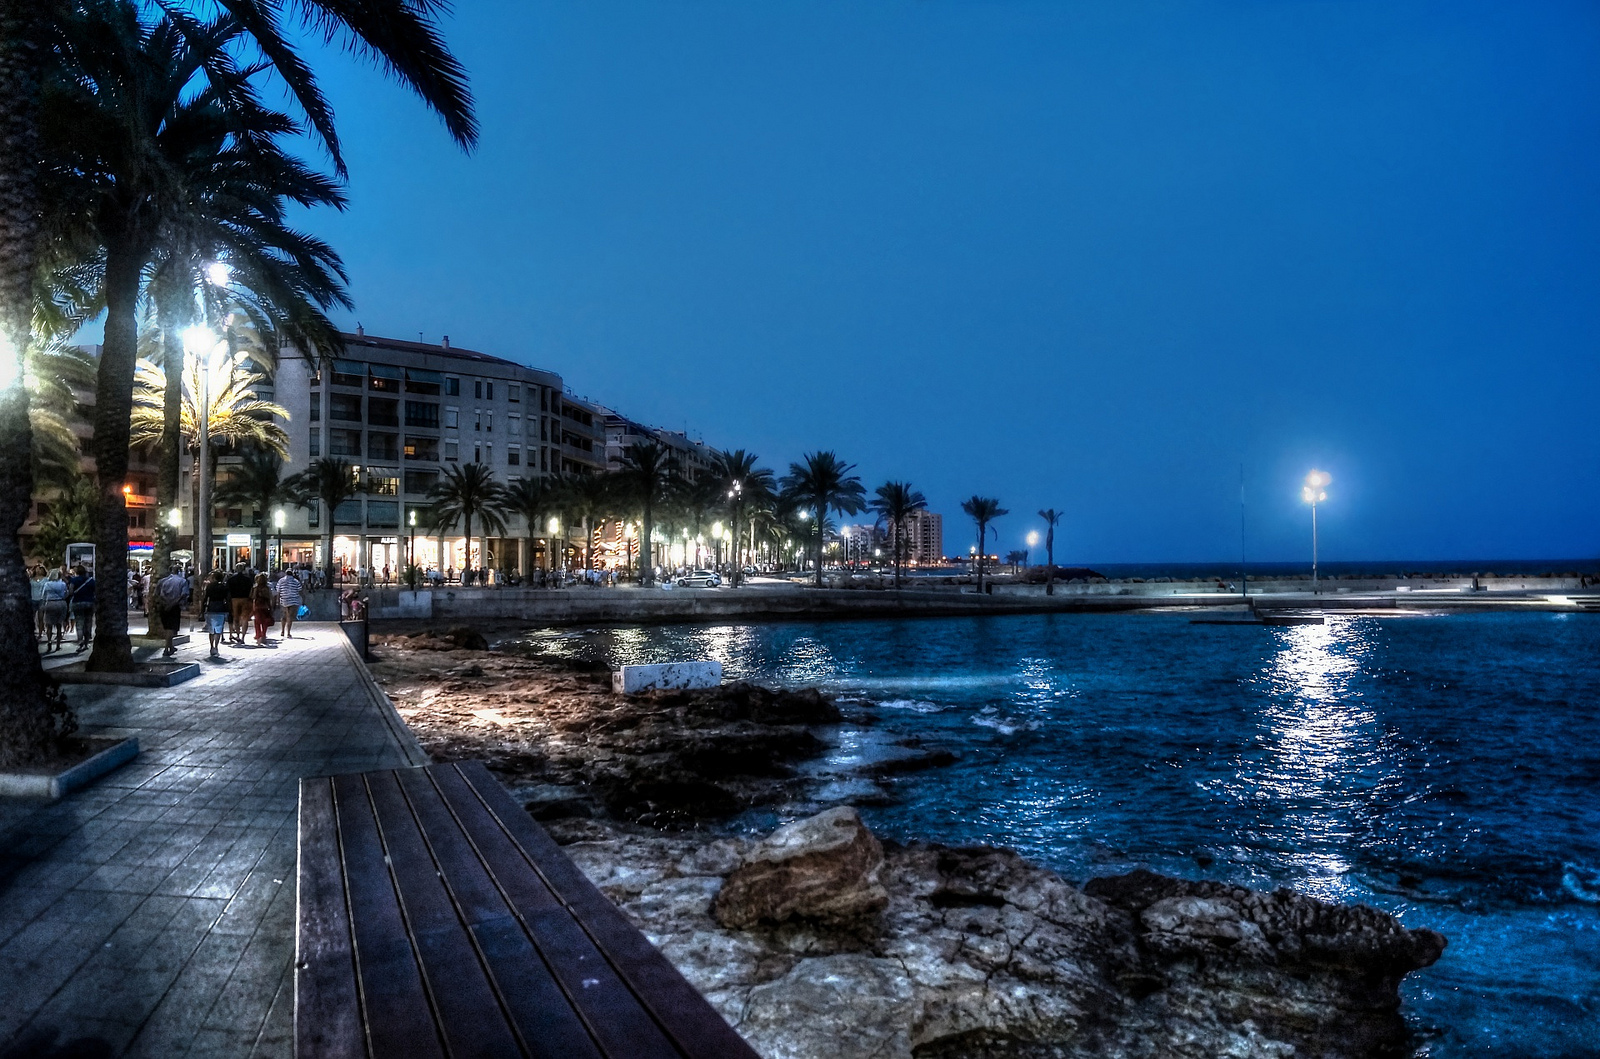 ITSH Property Torrevieja by night 16